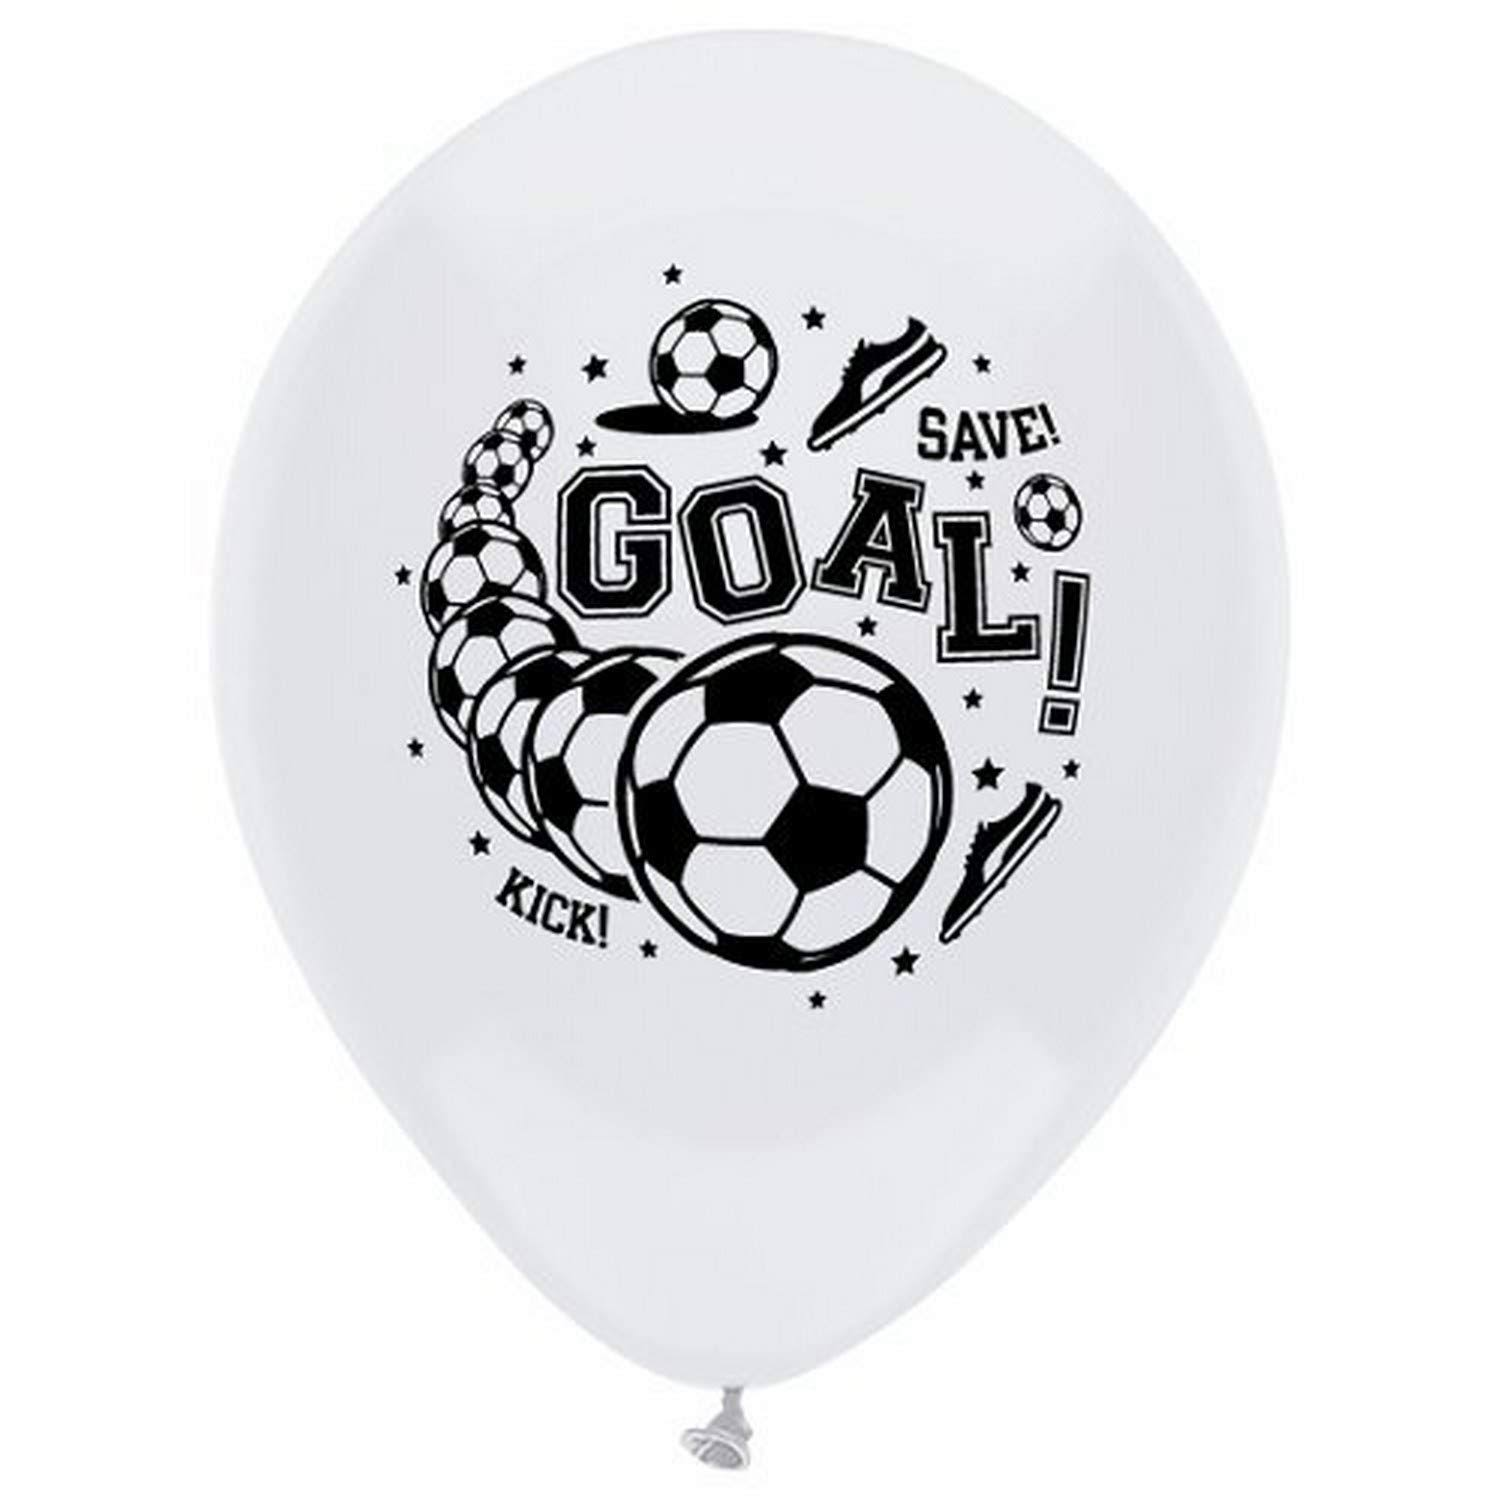 Soccer Printed Latex Balloons - 8ct